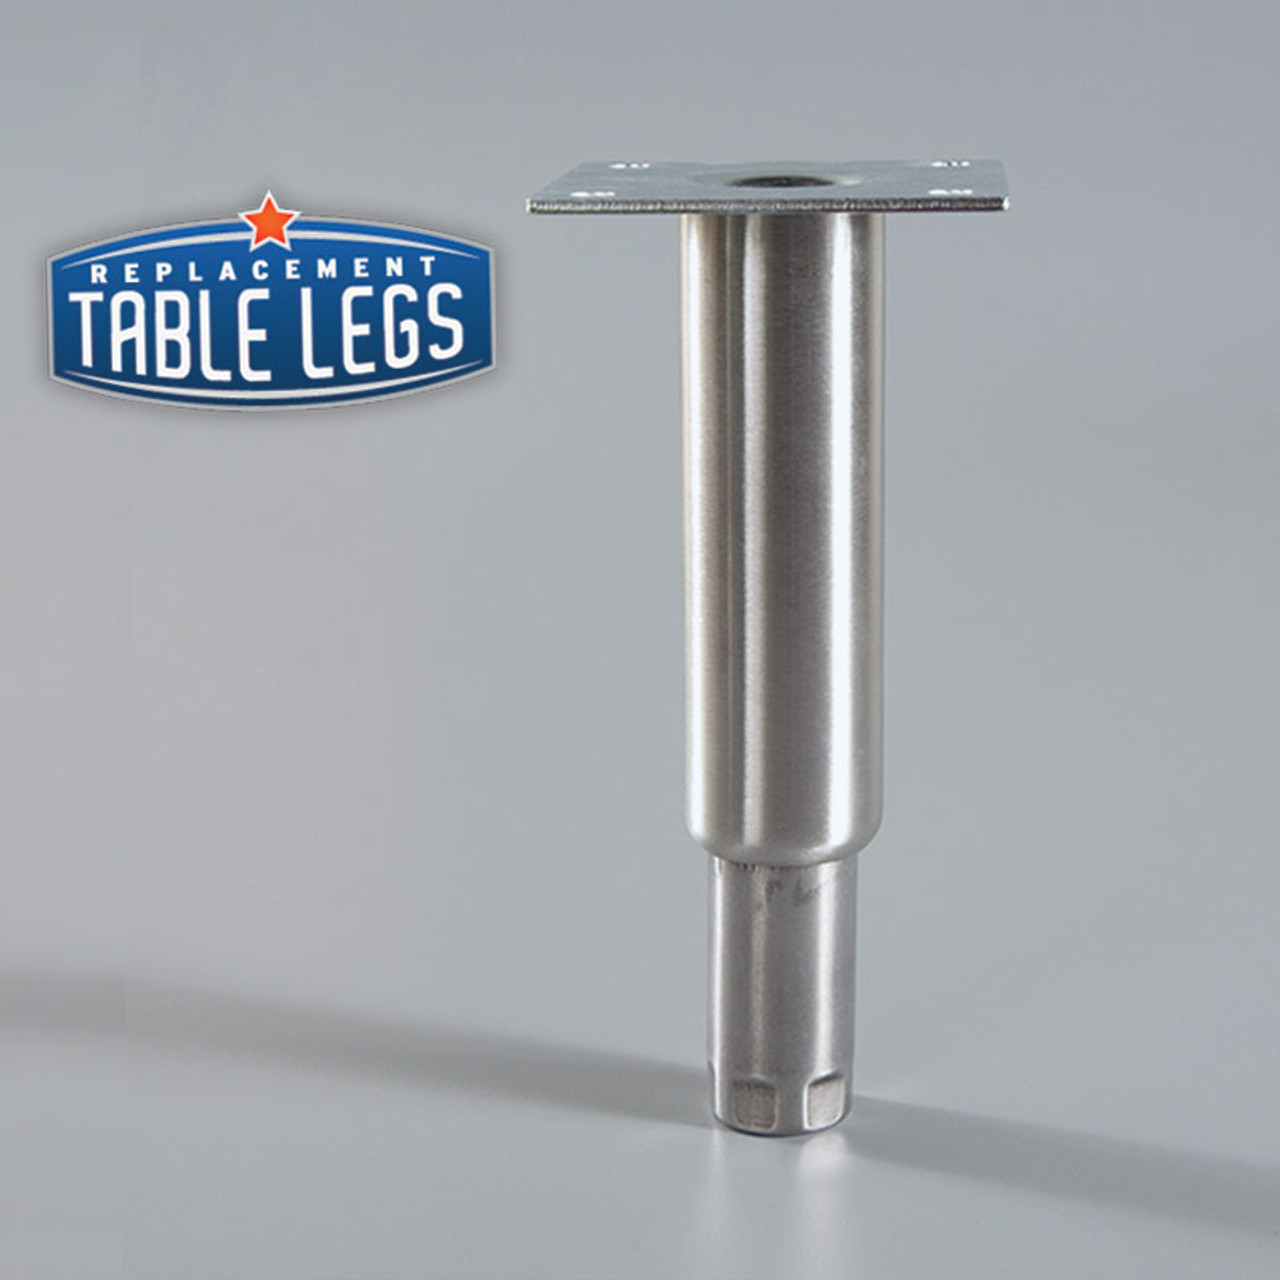 Heavy Duty Equipment Leg with foot extended - replacementtablelegs.com